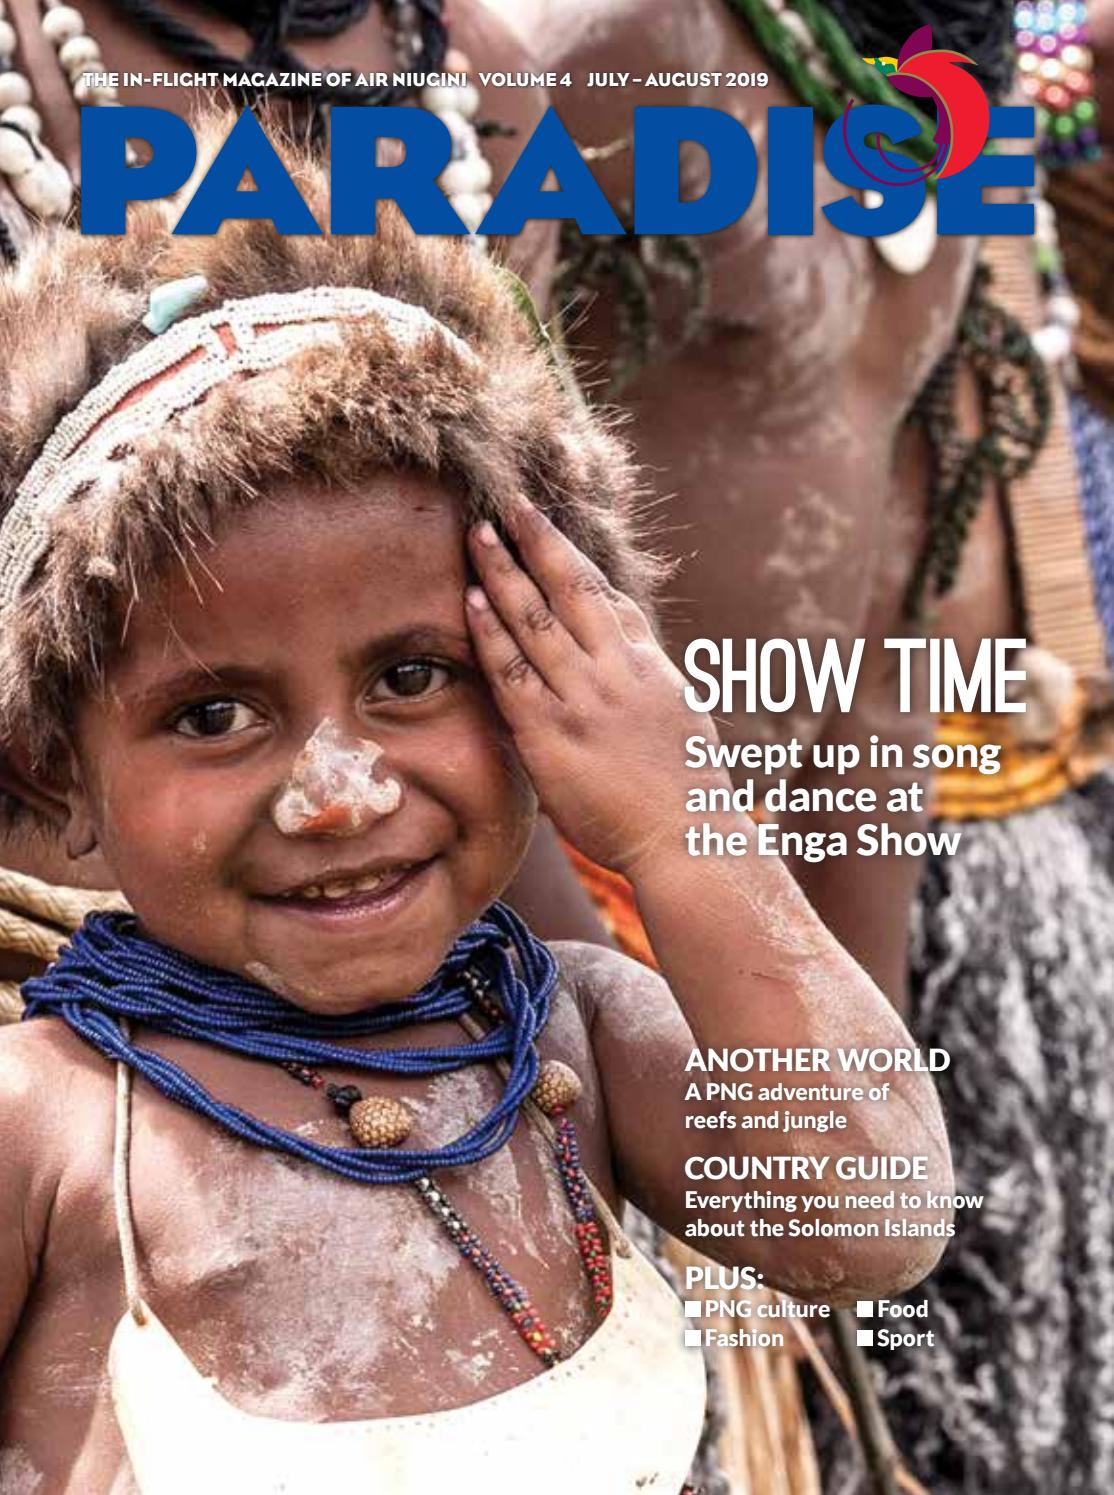 Paradise: the in-flight magazine of Air Niugini, July/August 2019 by